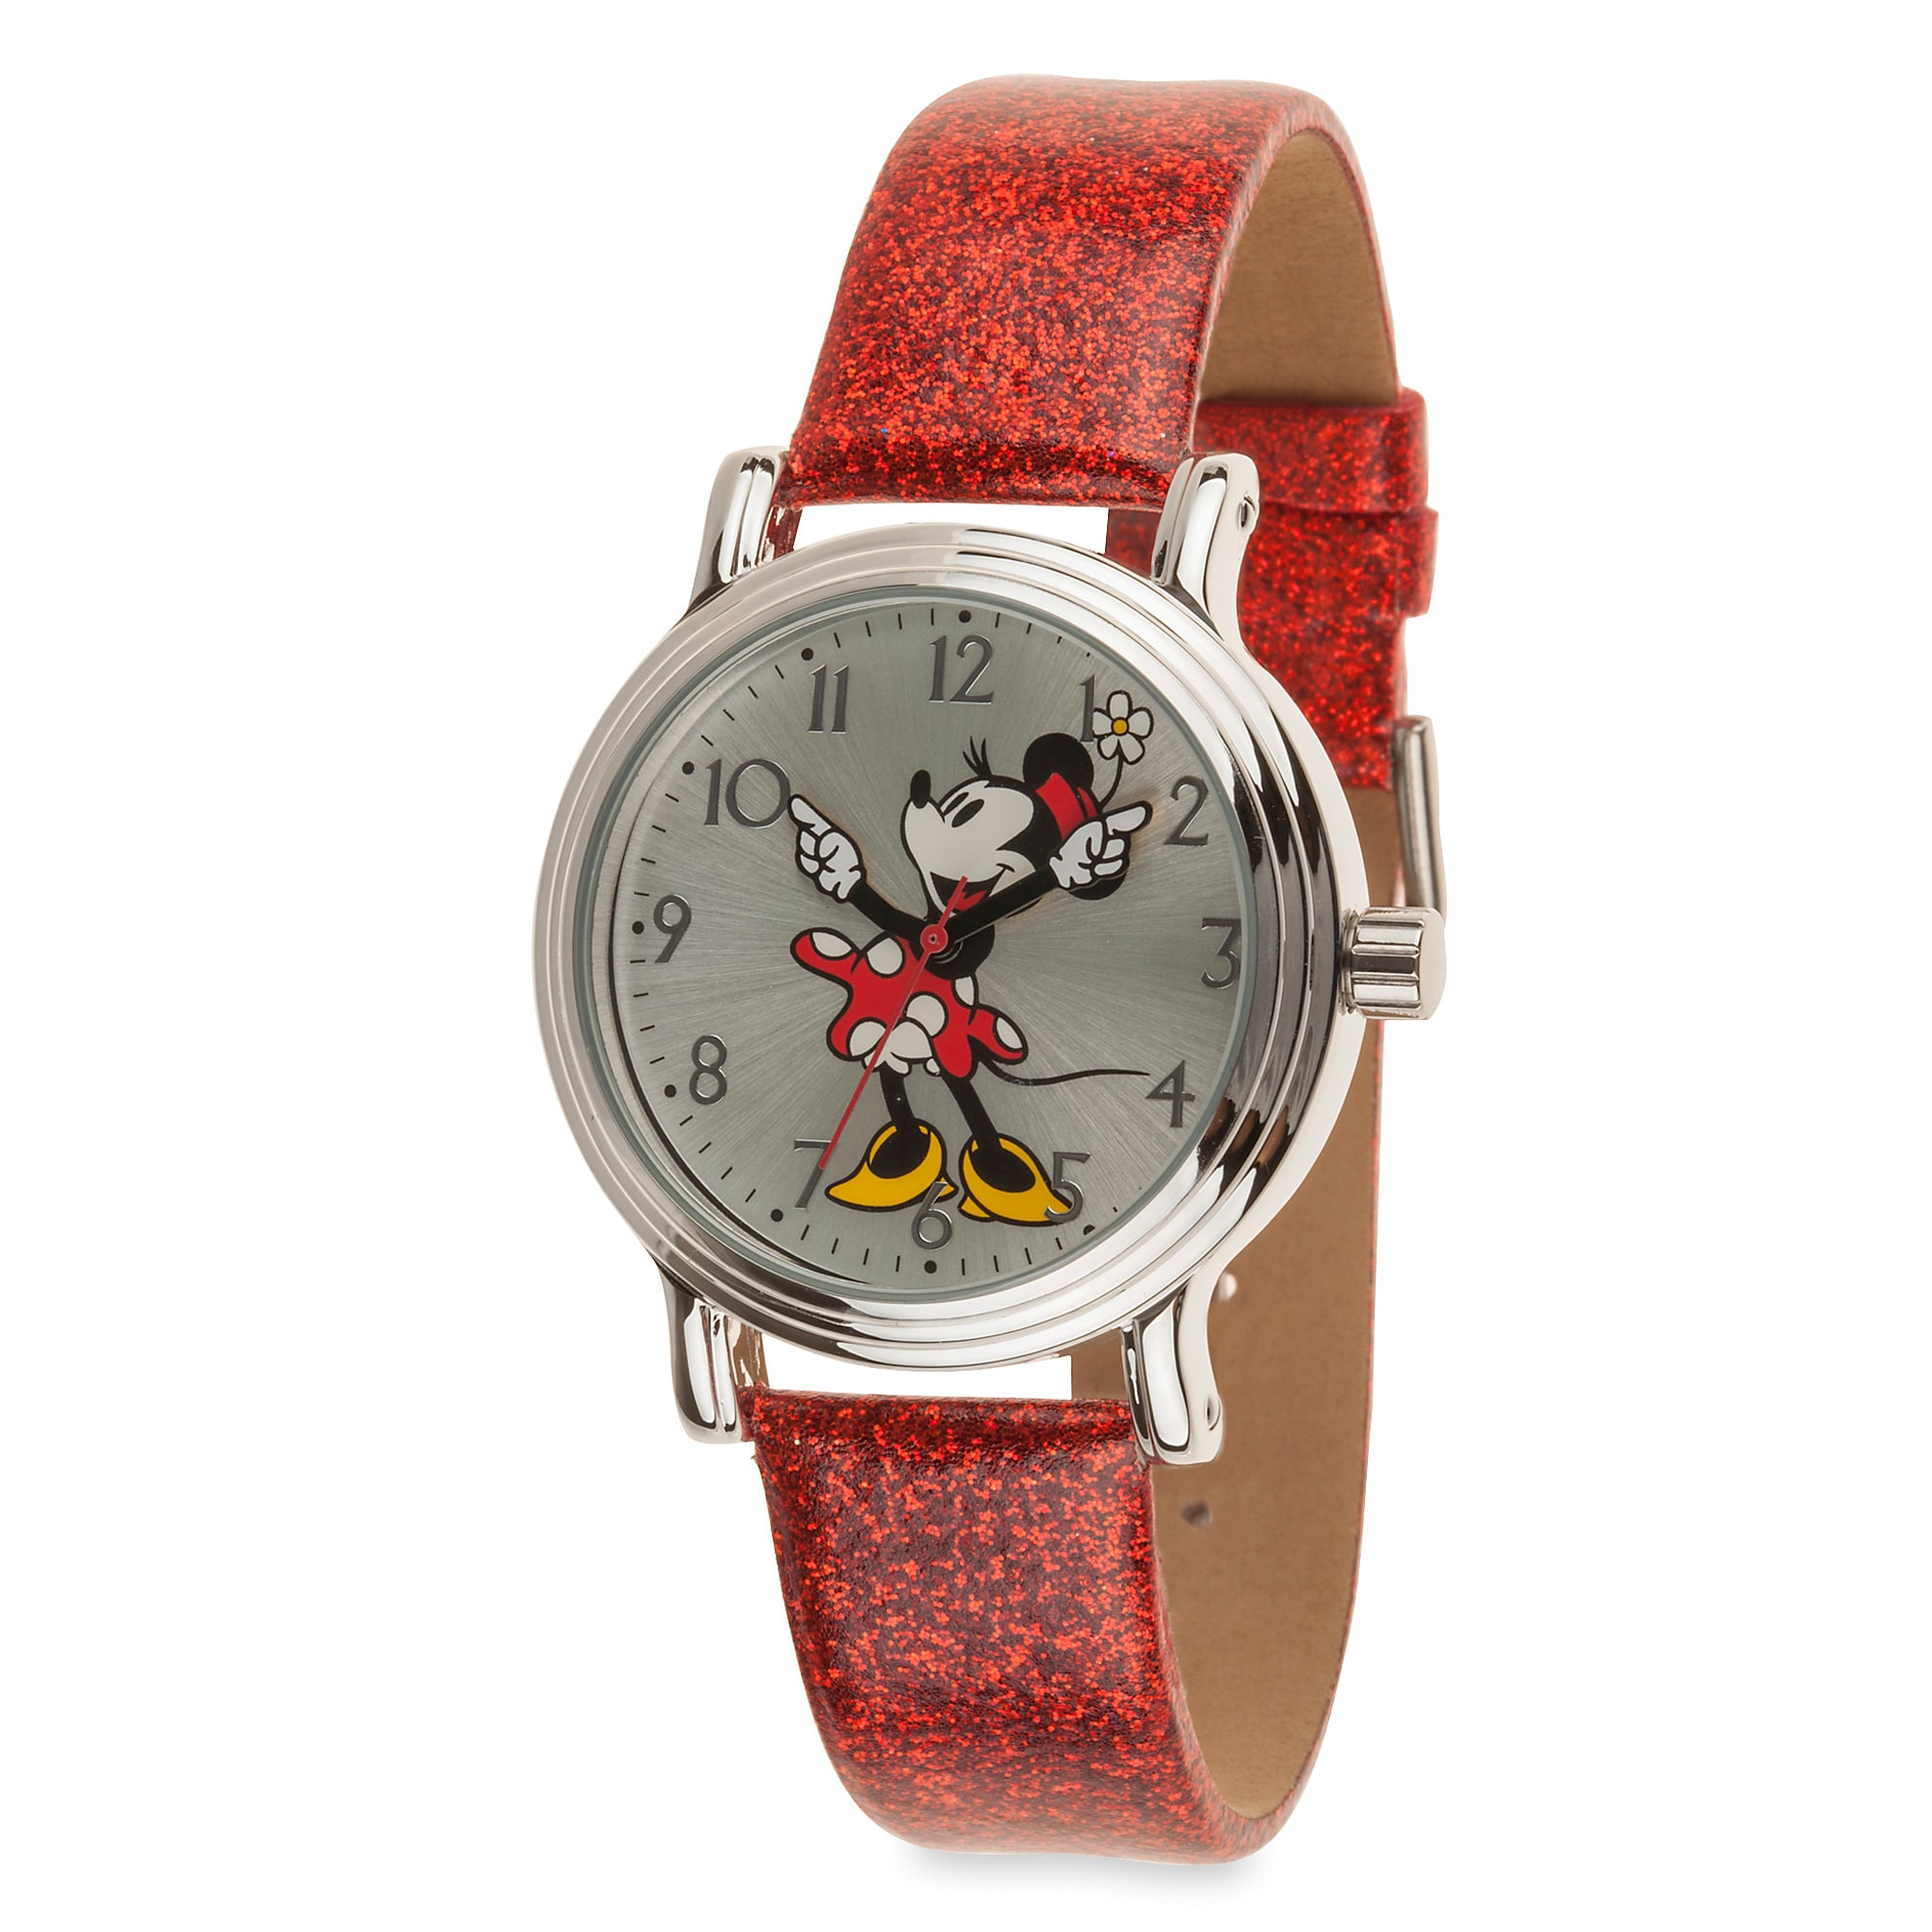 in gallery product leather accessories watches red britain steel burberry stainless strap watchred watch lyst silver